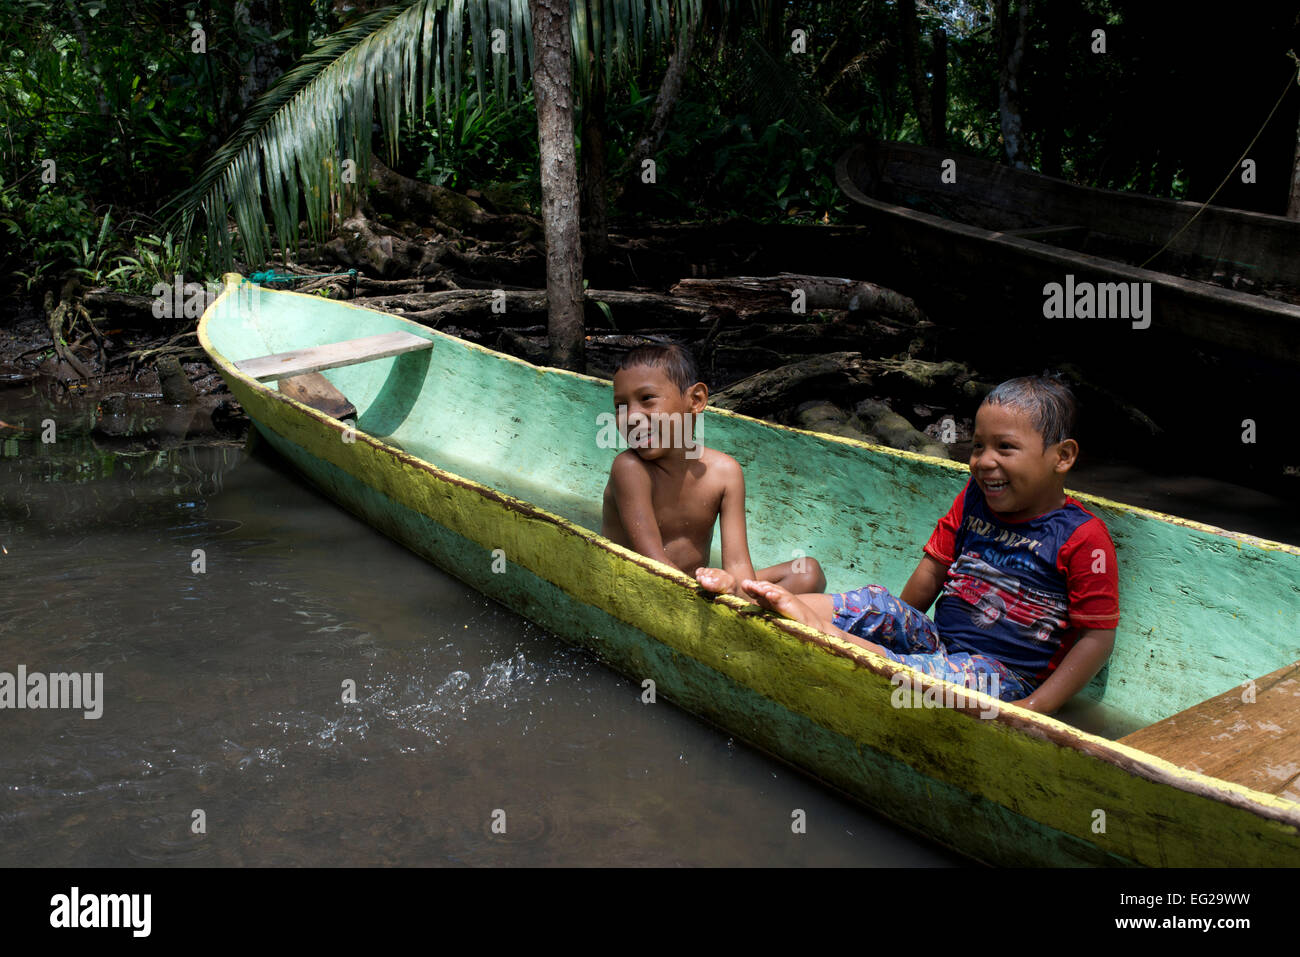 Kids play in one of the local boats used by the Ngobe Indians as their main form of transport, sheltered under a Stock Photo